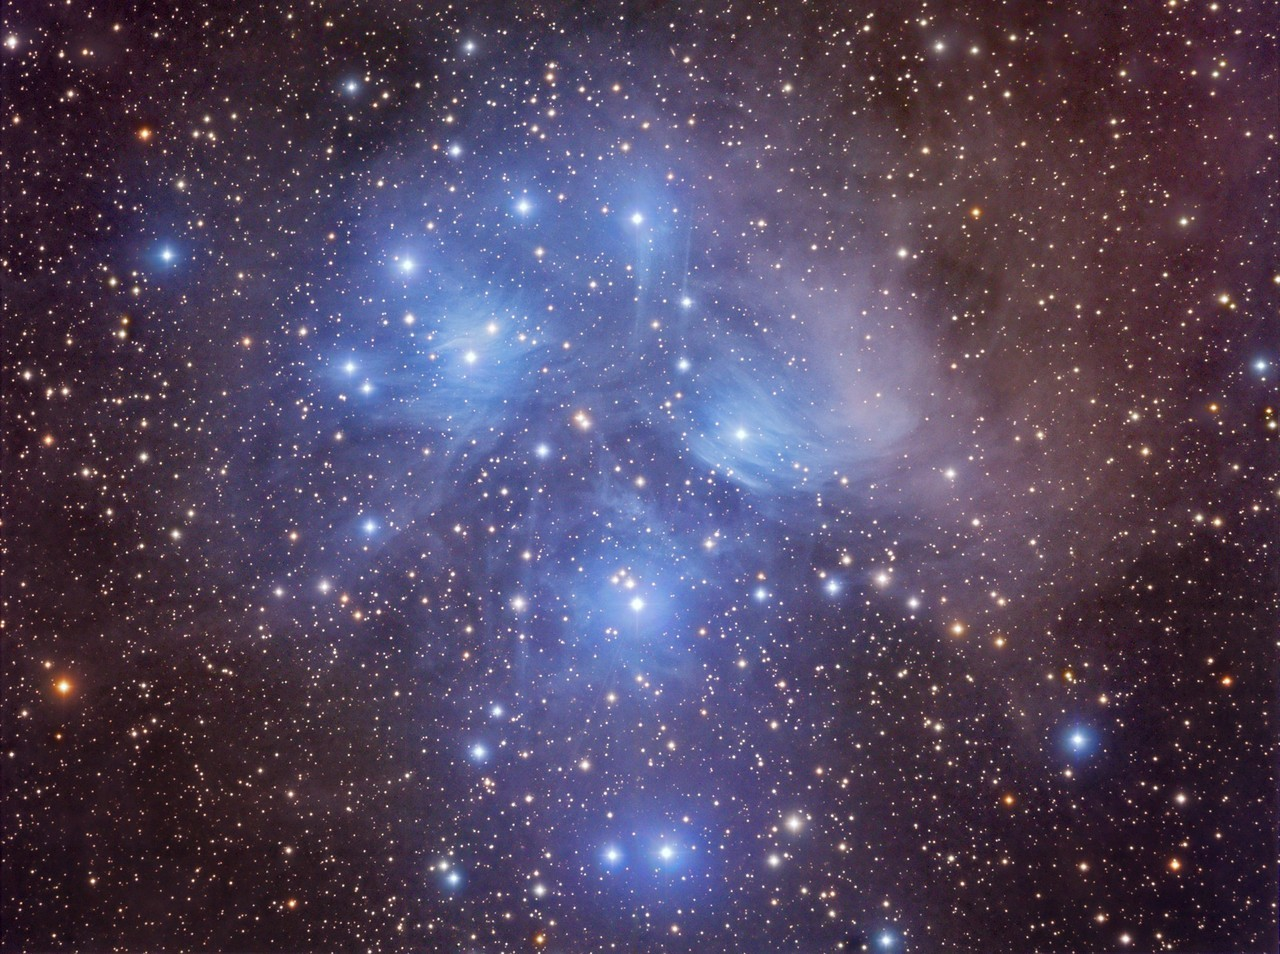 "M45, The Pleiades M45, The Pleiades in natural color, with luminance and RGB combined. For the color I used 10 minute and shorter 5 minute exposures together with the luminance to help prevent the very hot blue stars from becoming bloated.  Total Exposure time 4.75 hours   Clear Skies TerryDown Under Observatory on FacebookDown Under ObservatoryYouTube   Date of Shoot 13th and 16th October 2012 All exposures unbinned Luminance 16 x 5 min, 15 x 1 min RGB 6 x 10 min ea, 7 x 5 min ea. QHY9M monochrome CCD cooled to -30C www.astrofactors.com Thomas M. Back TMB 92SS F5.5 APO Refractor Paramount GT-1100S German Equatorial Mount (with MKS 4000) Image Aquisition Maxim DL Stacking and Calibrating: CCDStack Registration of images in Registar Post Processing Photoshop CS5   Among the closest star clusters is M45, colloquially known as the ""Seven Sisters"".  Due to its close proximity (a mere 440 light-years), and population of extremely hot and luminous stars, it can be easily seen with the naked eye near the constellation of Taurus.  The number of visible stars in this open cluster can quickly tell an astronomer how dark a location is on a night of observation.  Up to fourteen of the more than one thousand stars in M45 can be seen with the unaided eye.  The bright blue clouds surrounding the stars forms a reflection nebula known as the Maia Nebula.  The enormous cloud of dust reflects the light from the hot young stars and was once assumed to be the remnants of the young stars' births, but is now known to be the serendipitous interaction of an unrelated dusty region being illuminated by the open cluster of stars passing through its interstellar neighborhood.  Look closely and you will see the faint brown clouds of dusty material surrounding the cluster.  For comparison here is my earlier shoot from 2 years ago using a Canon 5D II DSLR together with the TMB 130SS http://flic.kr/p/dm2X6V by Terry Hancock www.downunderobservatory.com"